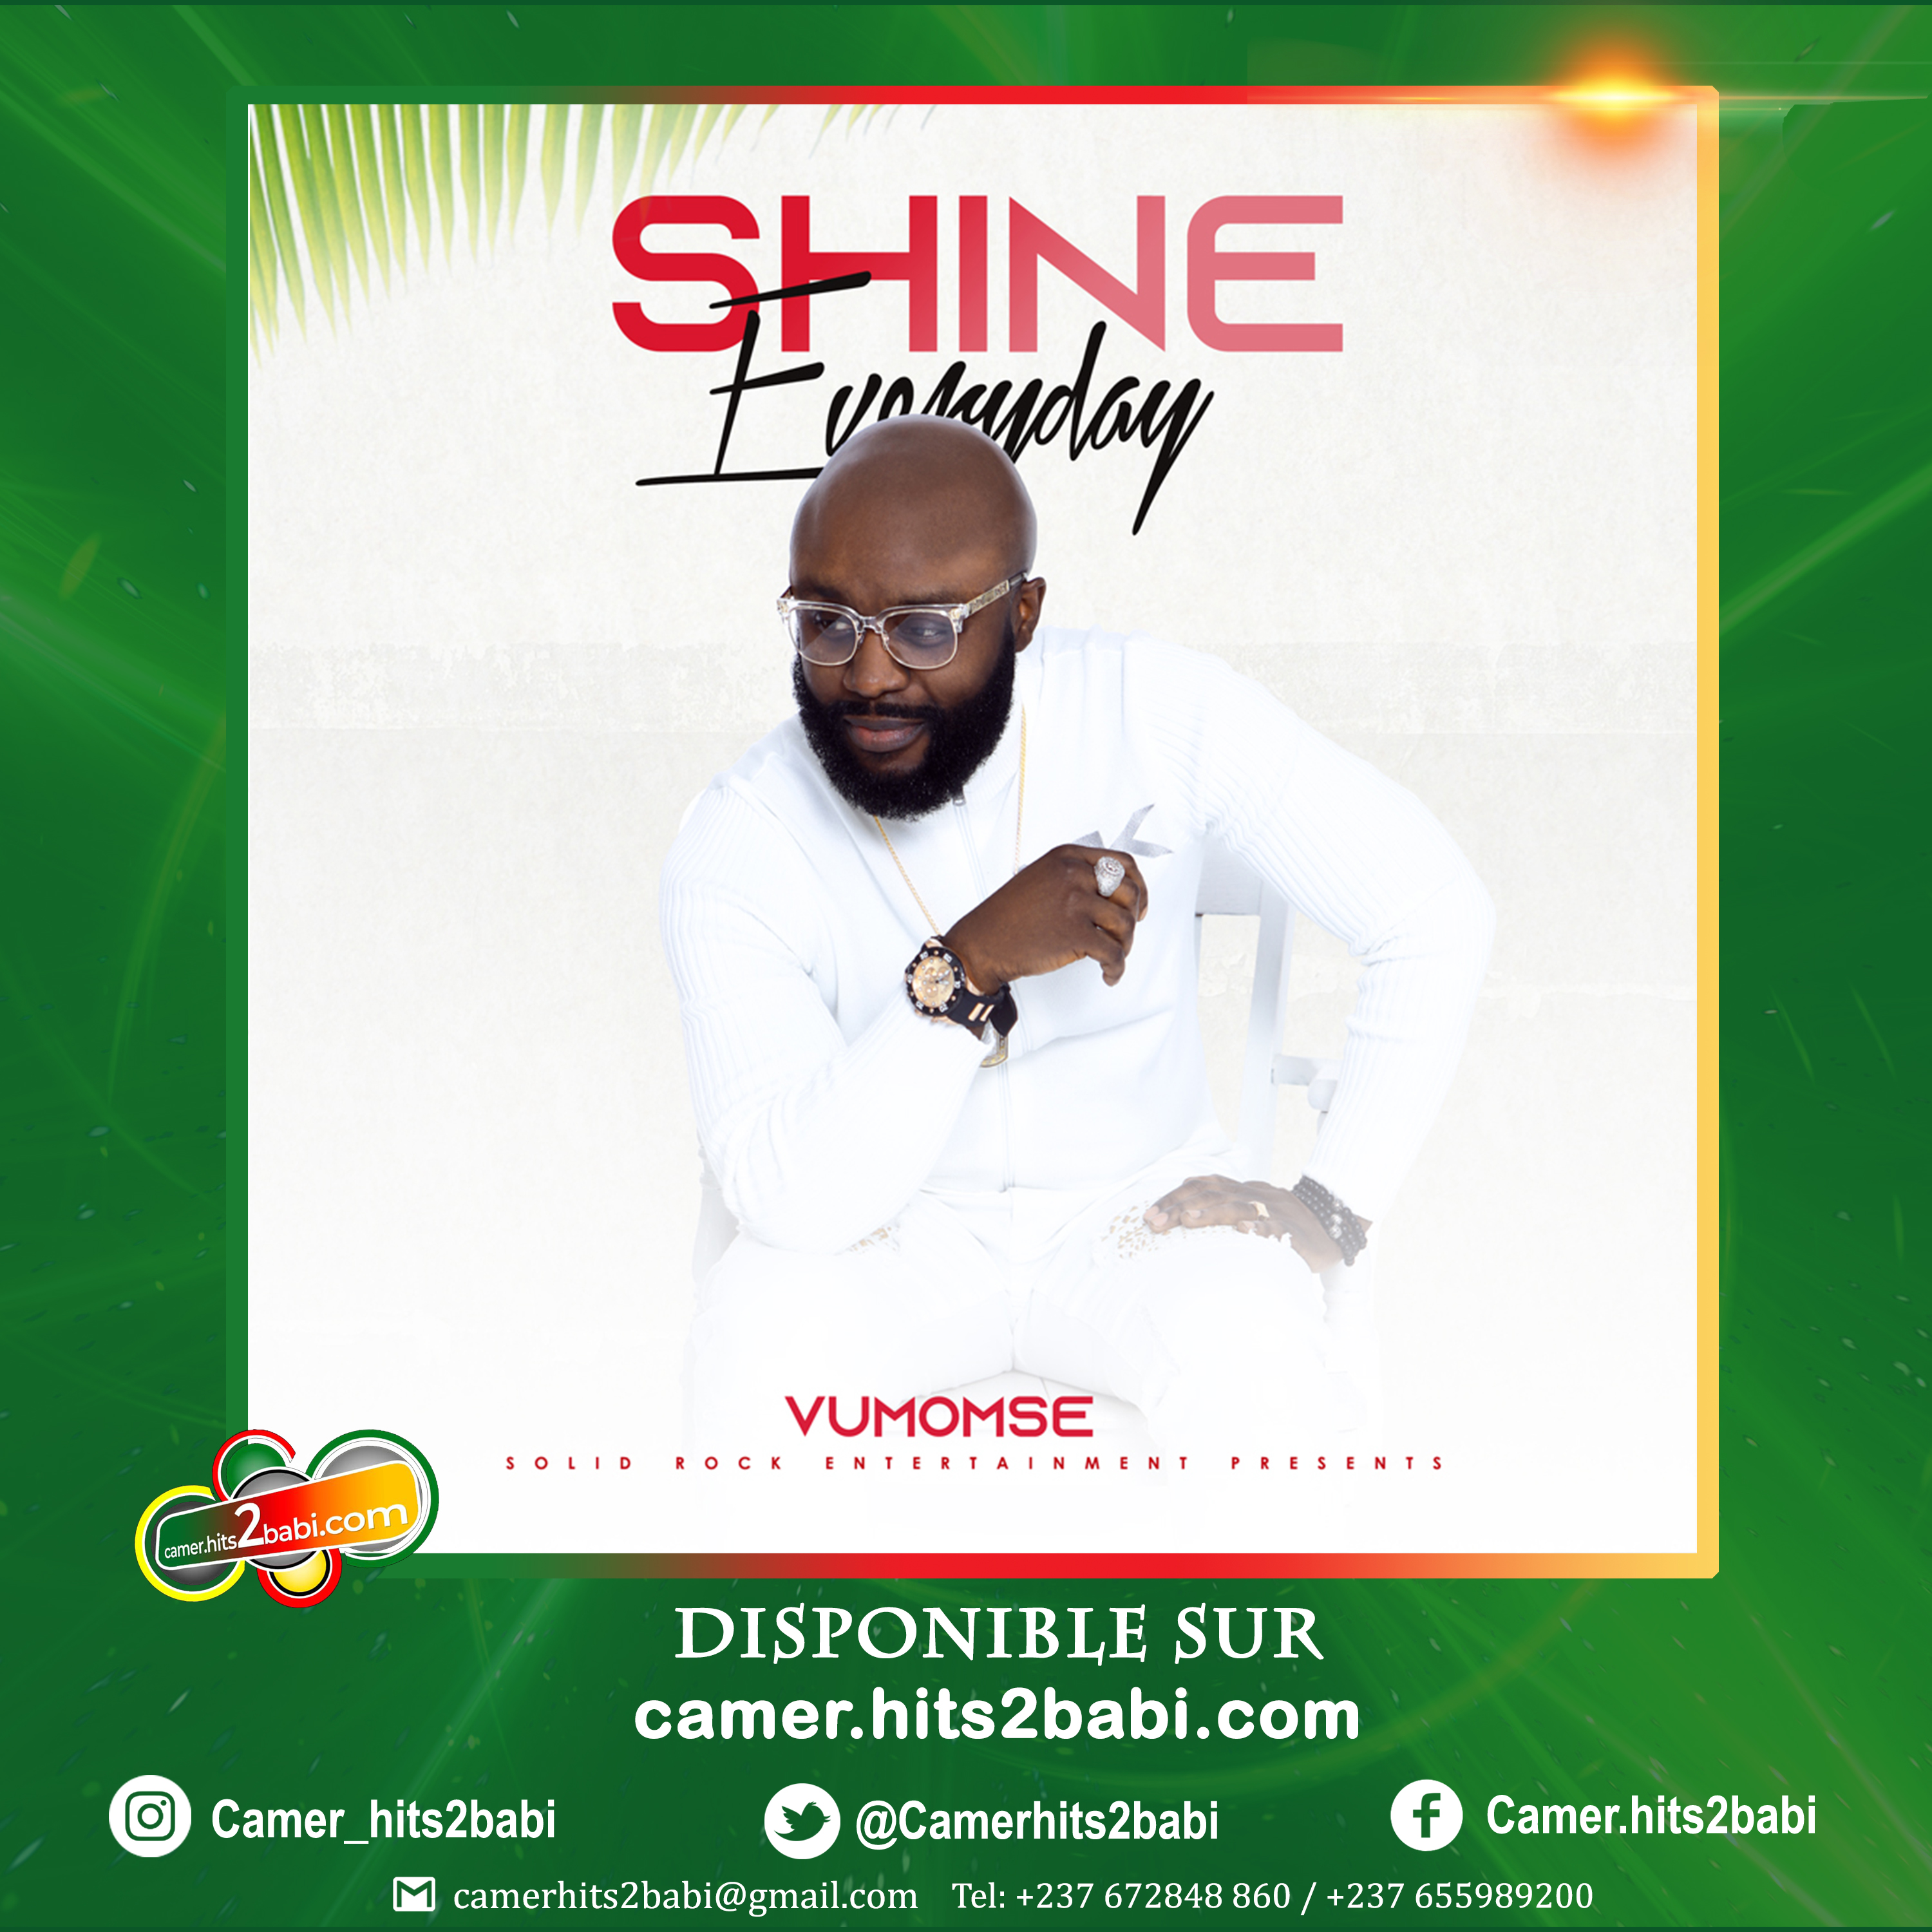 VUMOMSE - SHINE EVERYDAY